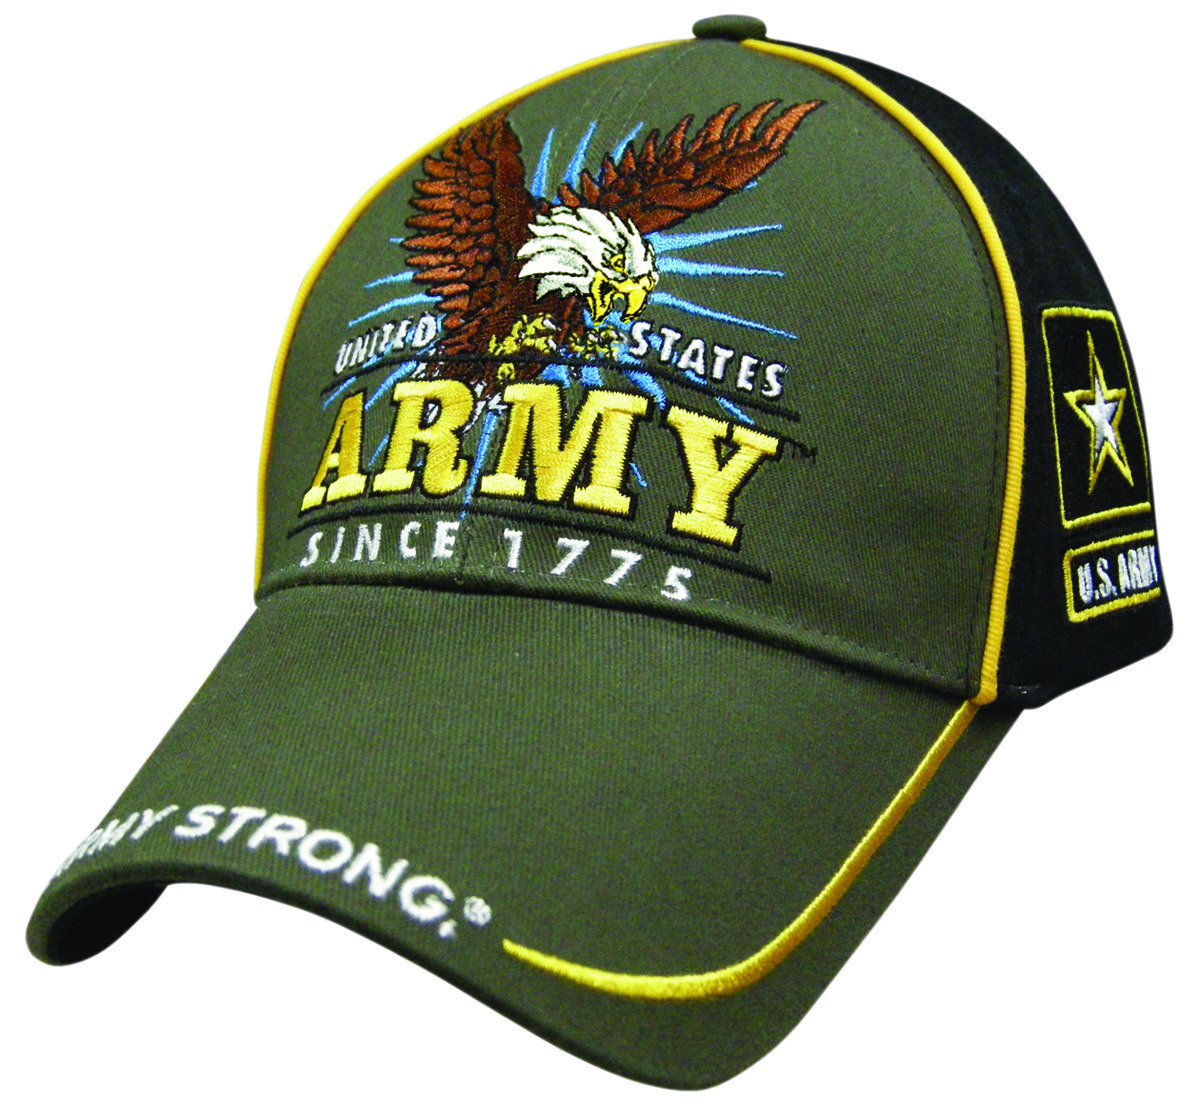 b5238e3d144d32 LICENSED-U.S.ARMY-VETERAN   ARMY-STRONG-SINCE-1775